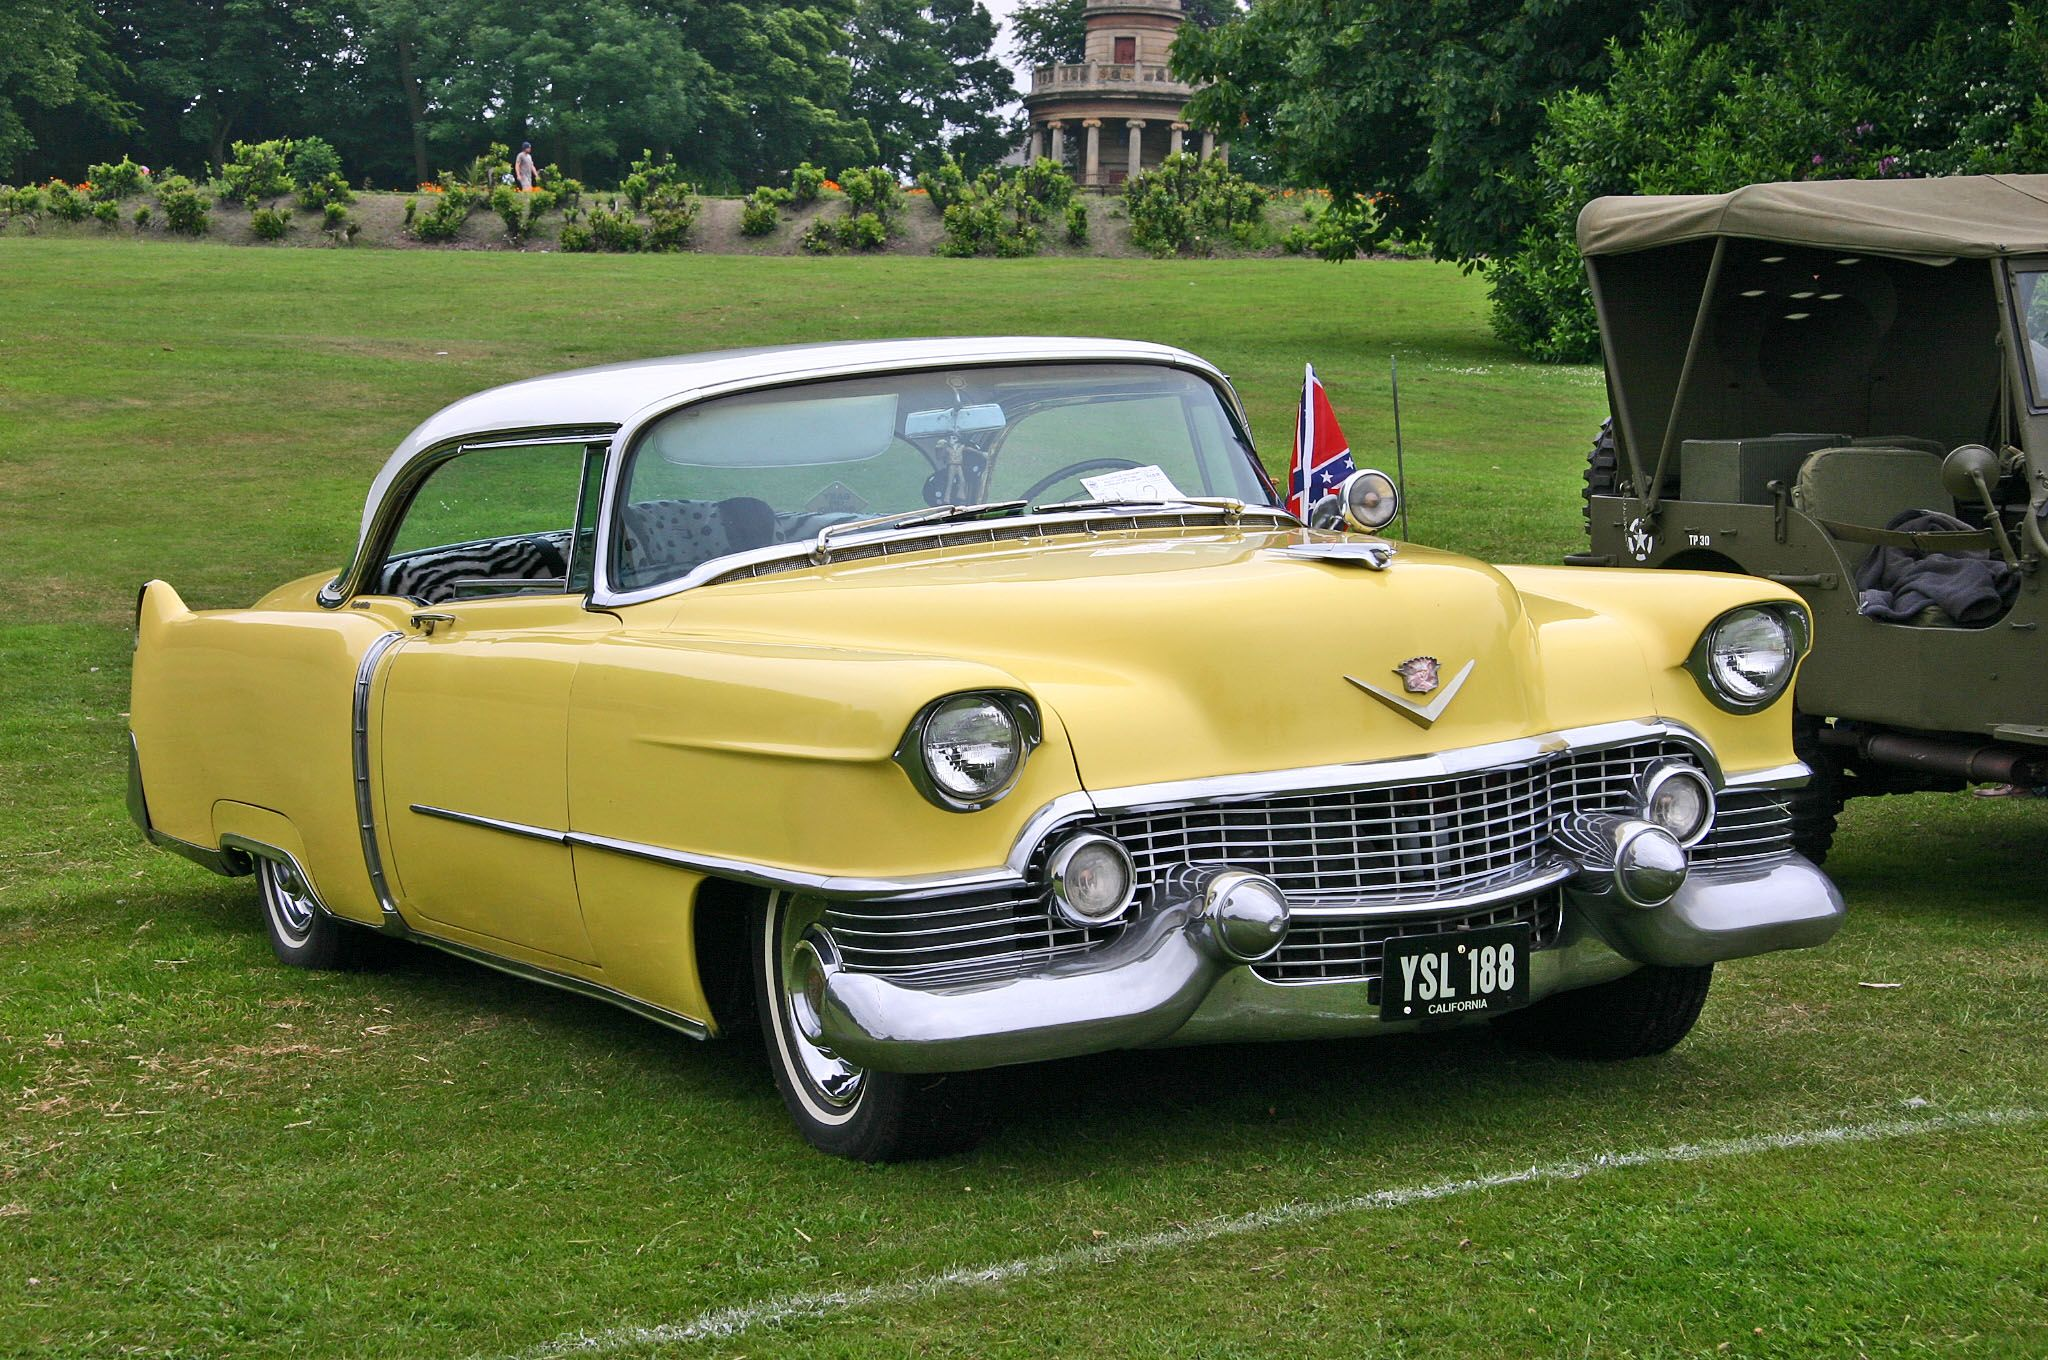 1954 cadillac | Description Cadillac Coupe de Ville 1954 front.jpg